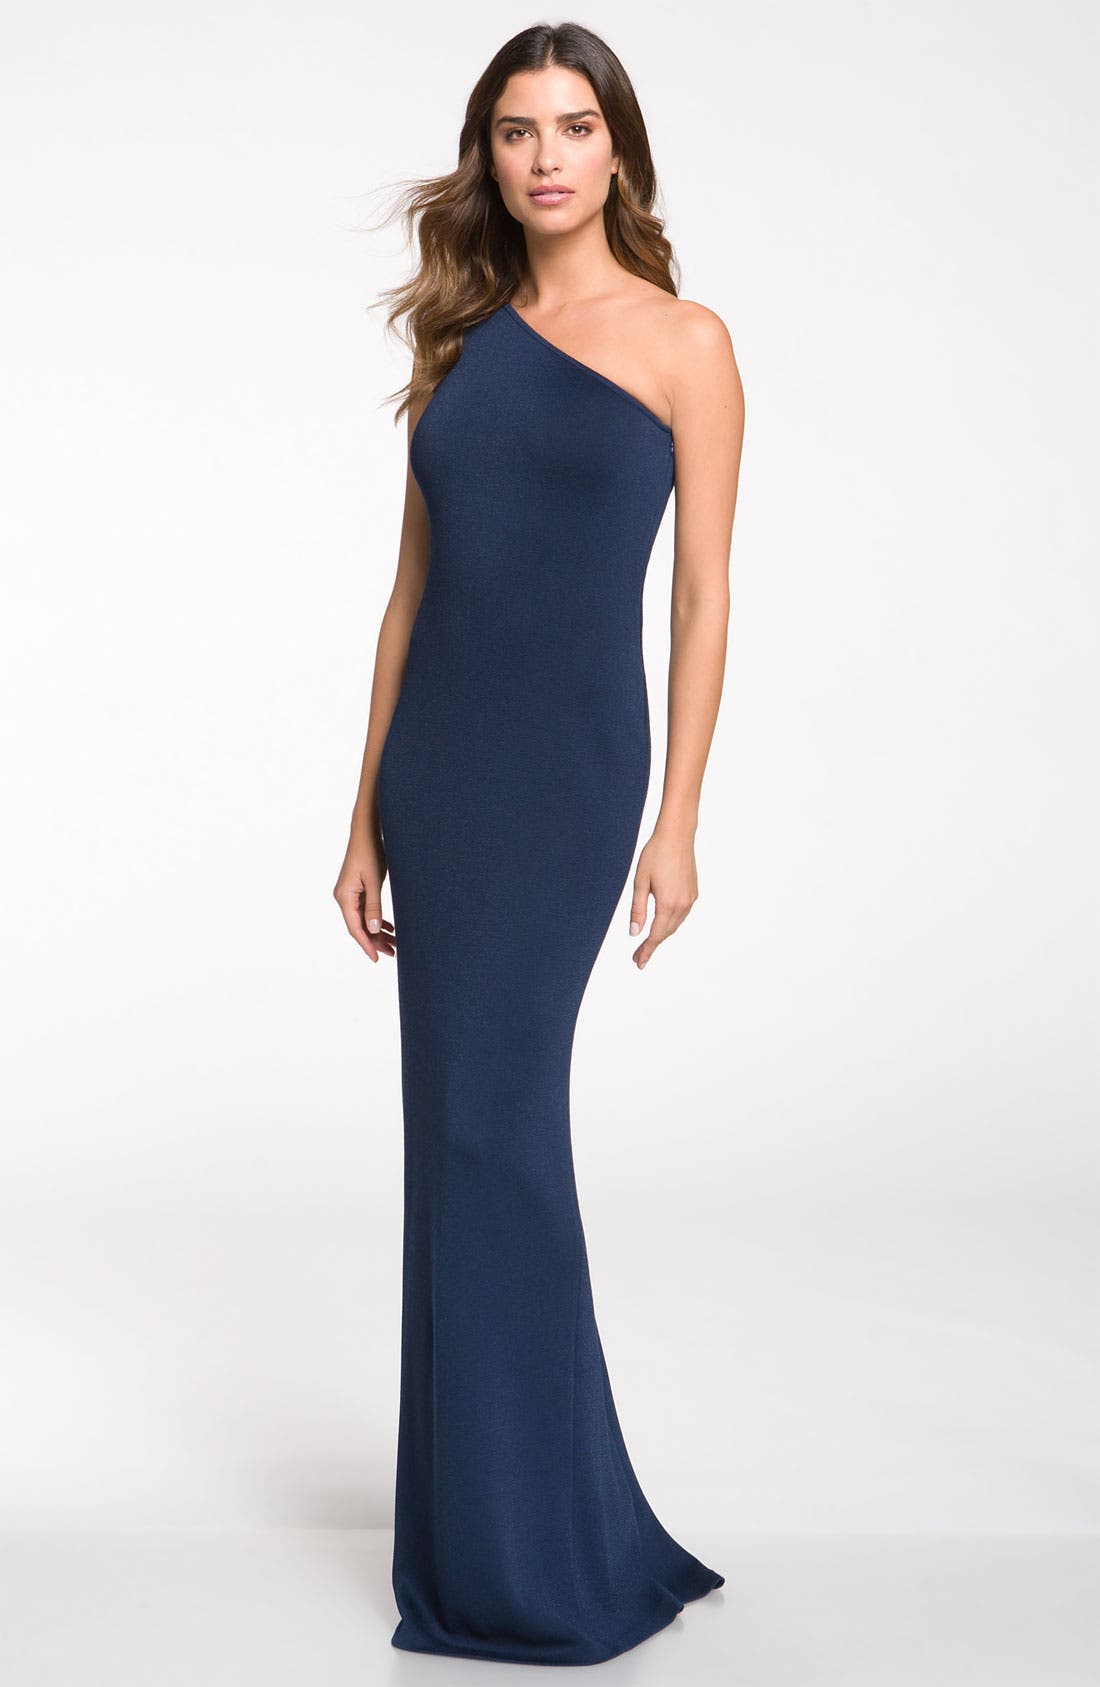 Main Image - St. John Collection One Shoulder Shimmer Milano Knit Gown